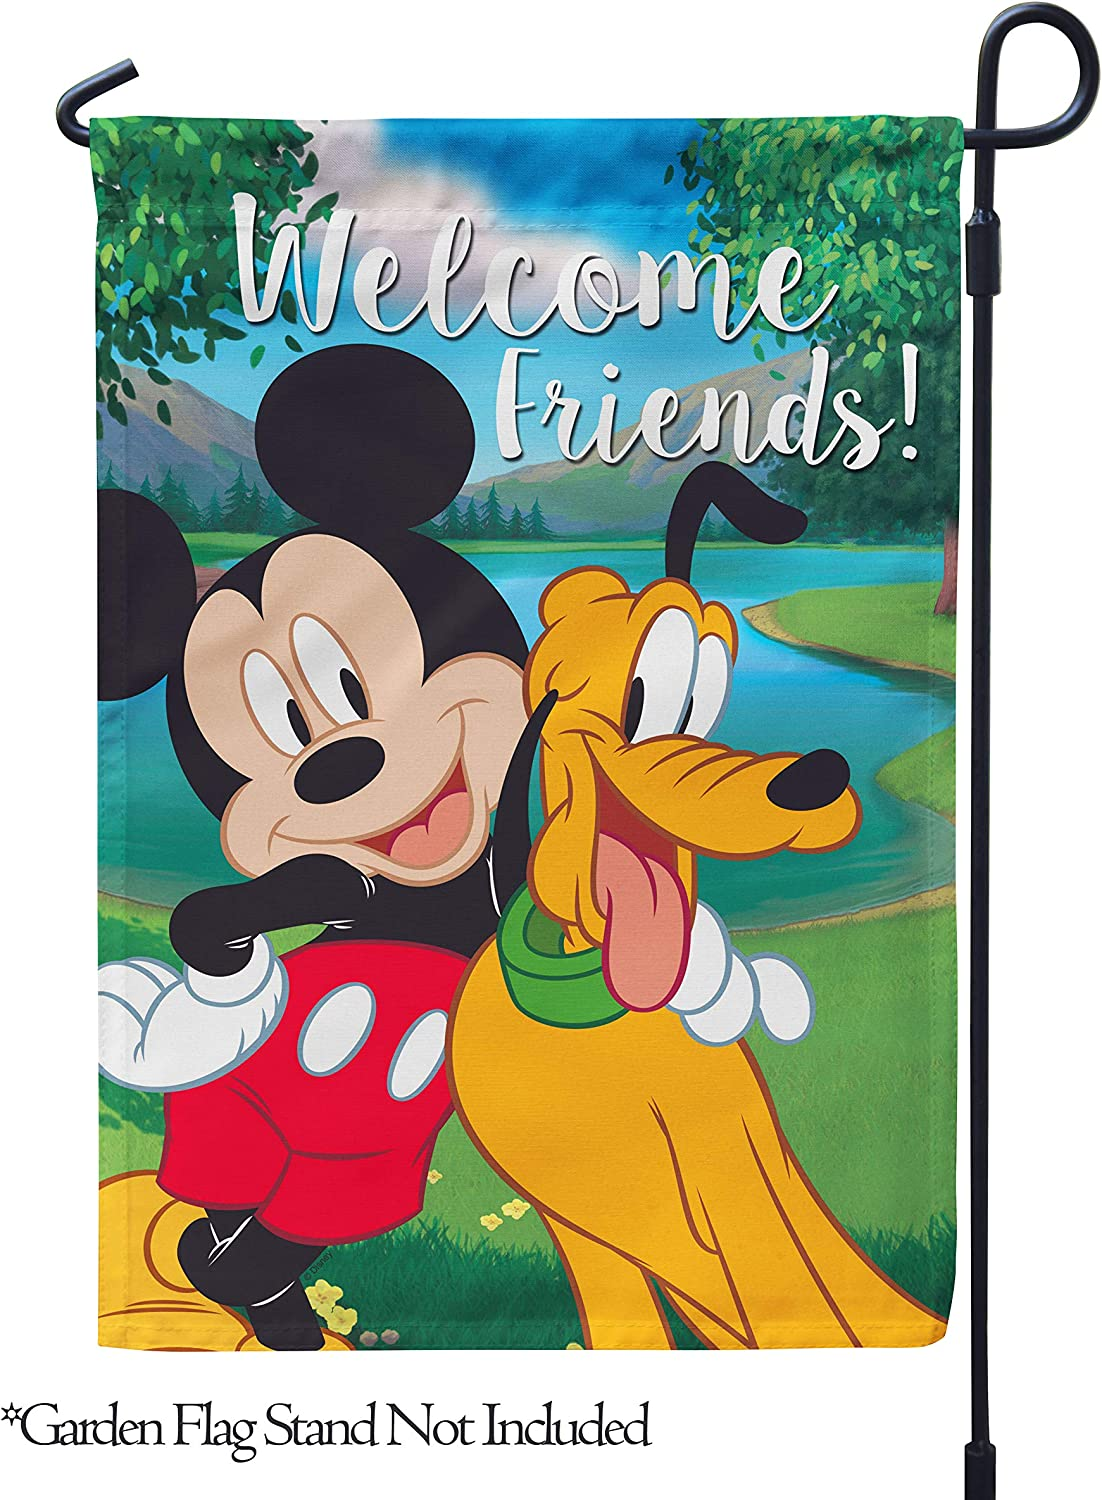 """Flagology.com, Disney, Mickey Mouse, Pluto, Mickey & Pluto Welcome Friends – Garden Flag – 12.5"""" x 18"""", Outdoor, Exclusive Premium Fabric, Printed on Both Sides, Officially Licensed Disney"""